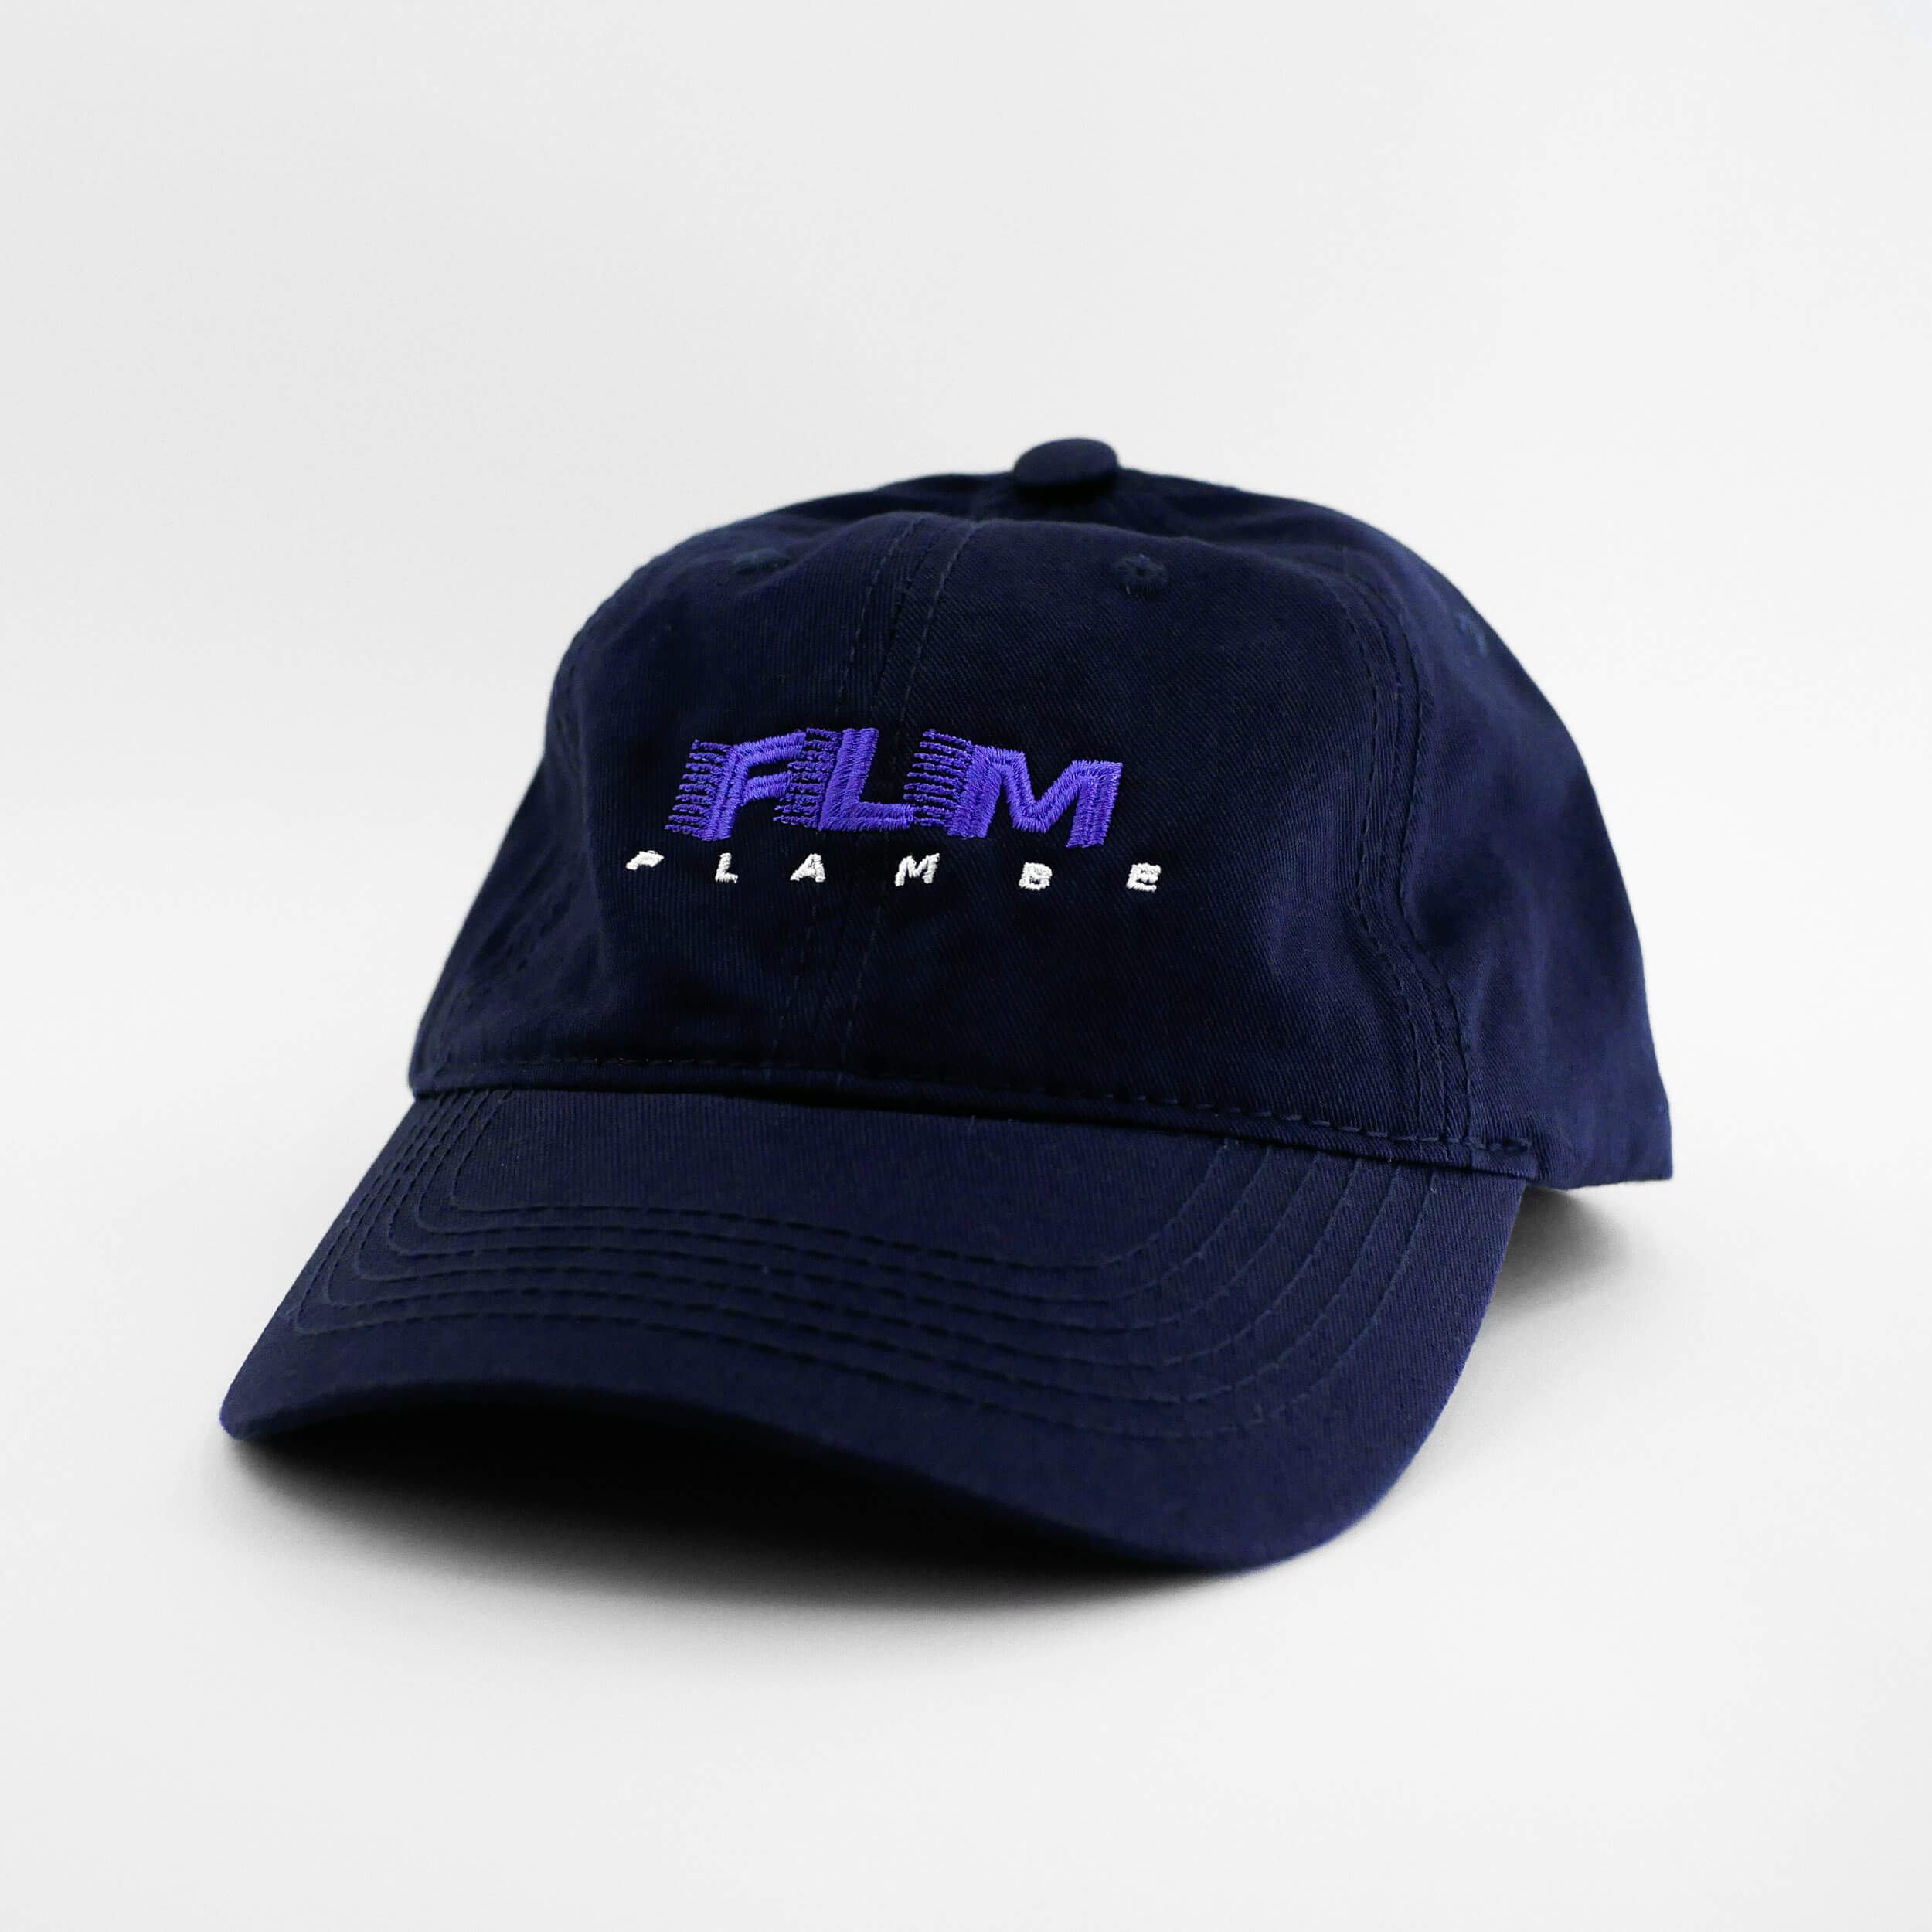 Angle view of the embroidered 'FLAMBE' navy blue dad hat from PHOSIS Clothing